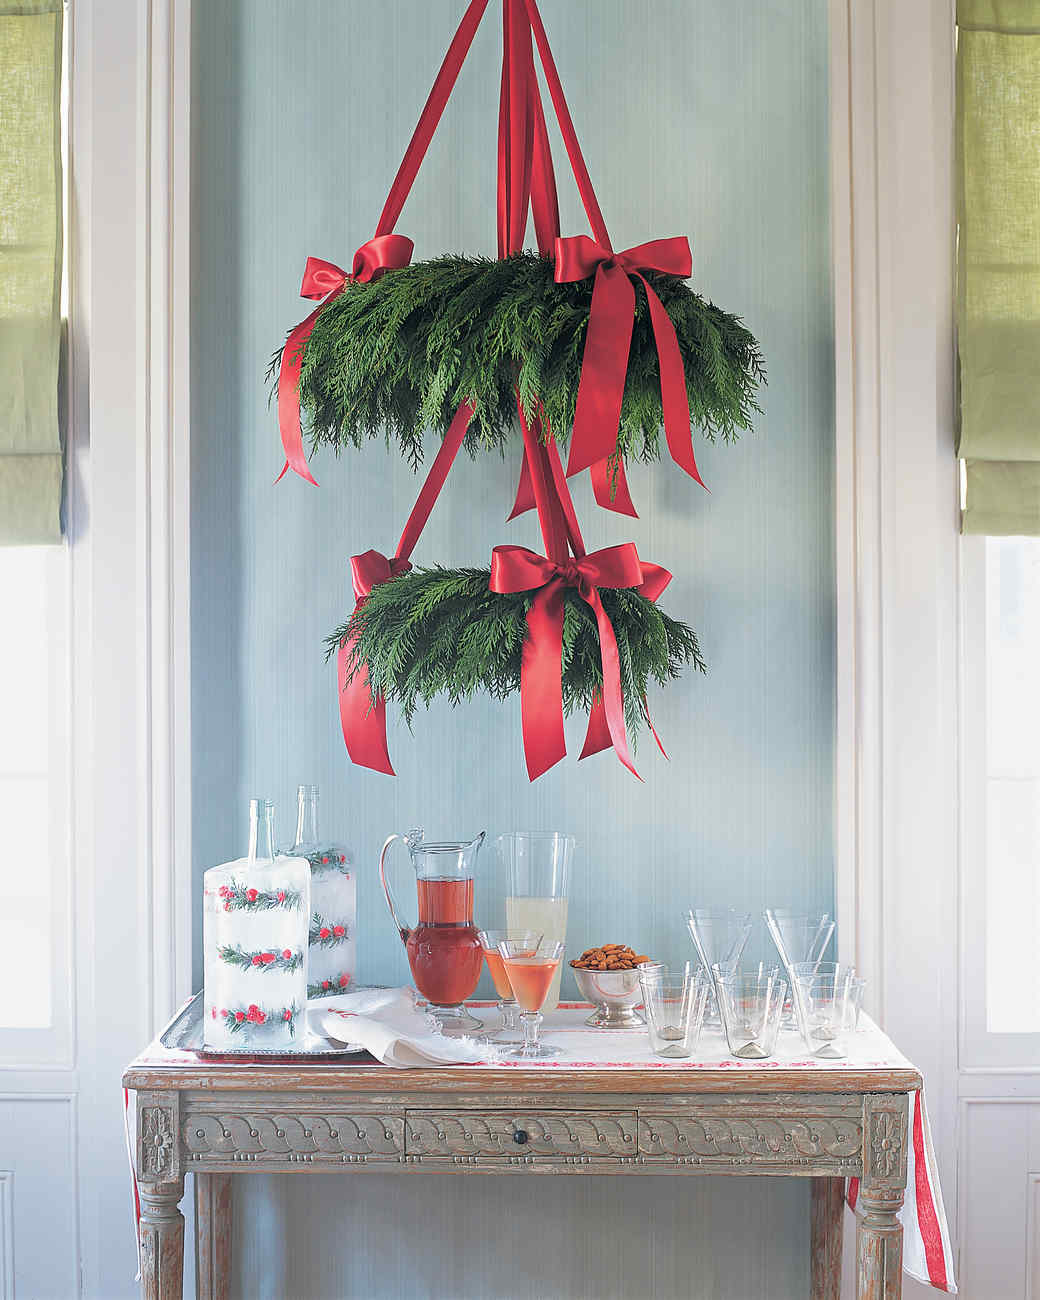 cedar wreath chandelier - Teal And Red Christmas Decorations